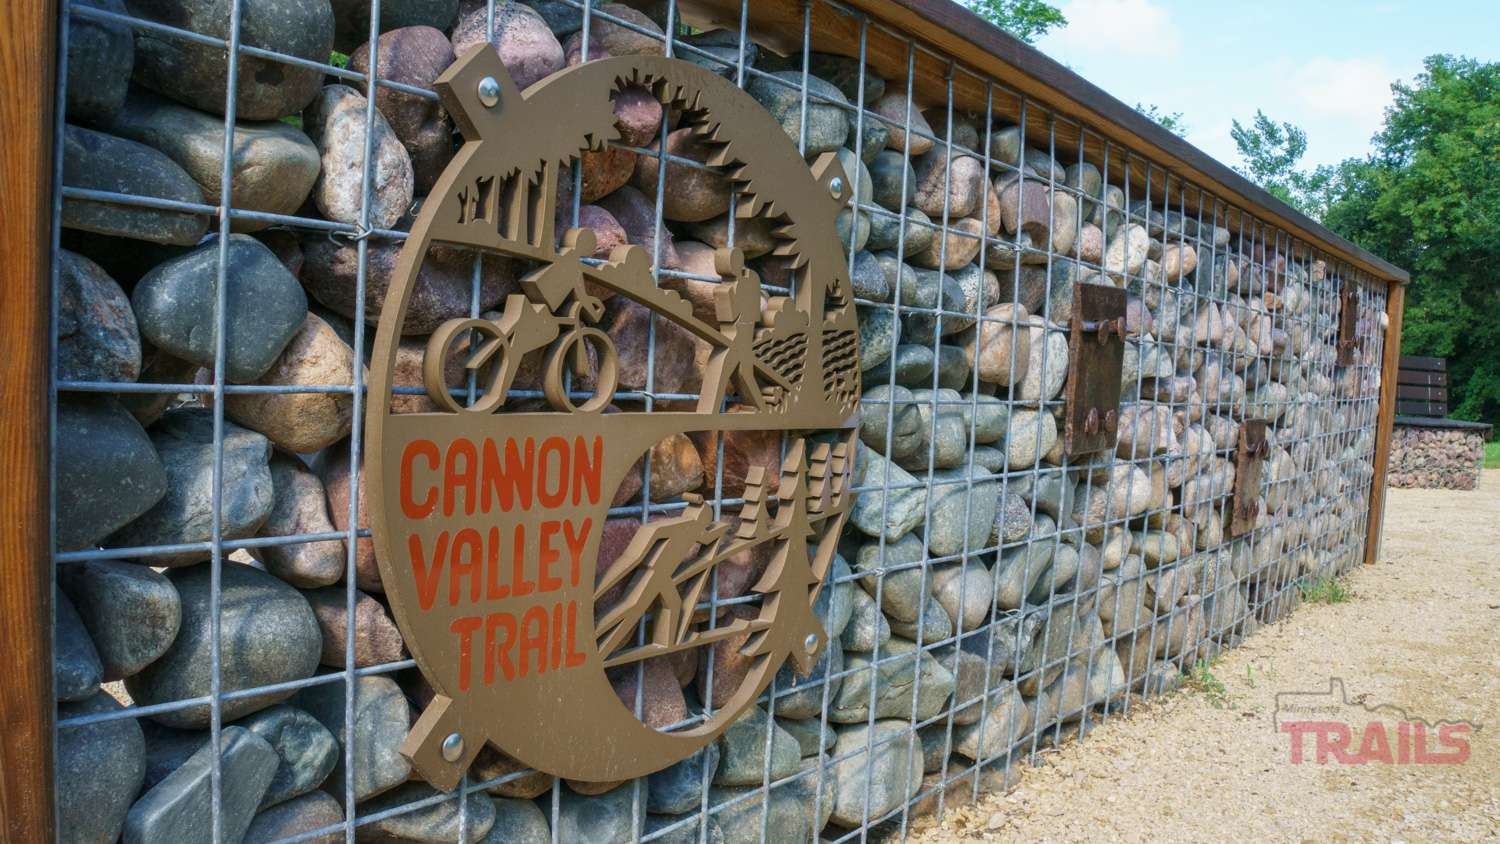 Sign of the Cannon Valley Trail